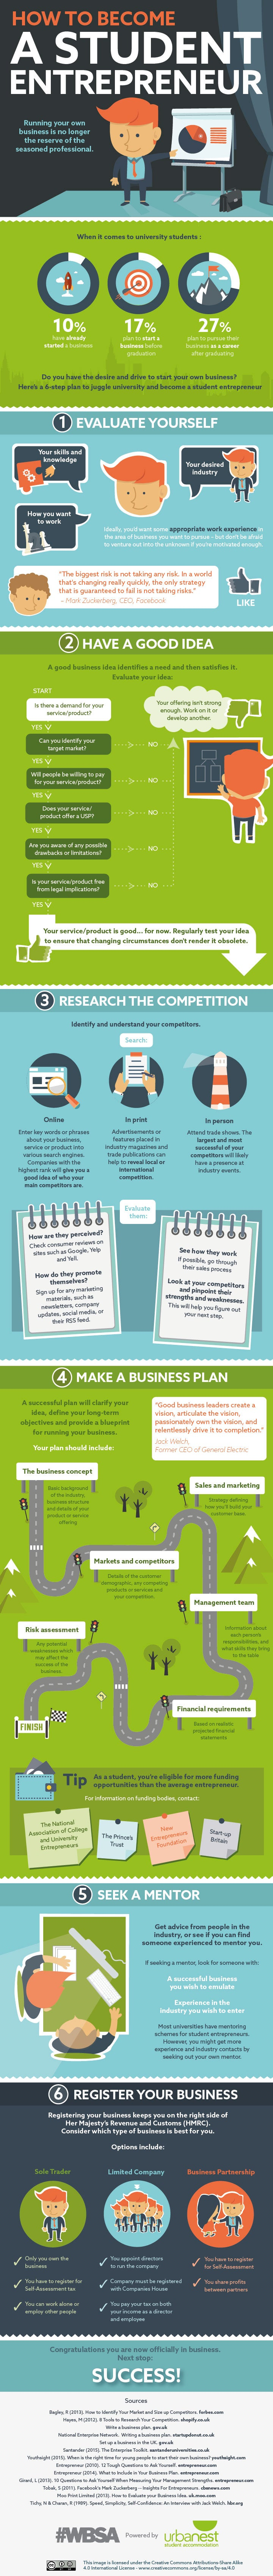 steps to becoming a successful student infographic 6 steps to becoming a successful student infographic